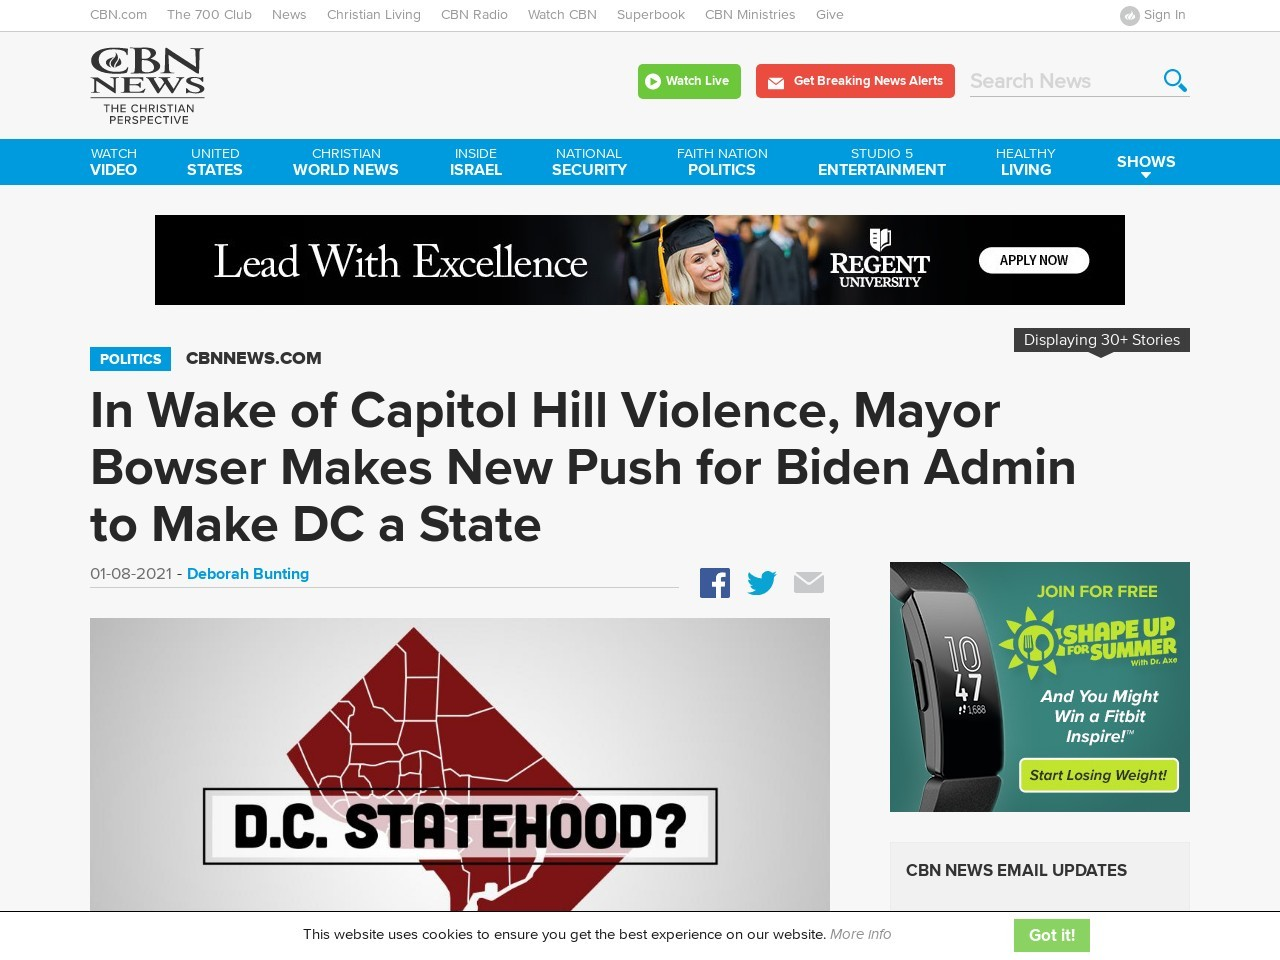 In Wake of Capitol Hill Violence, Mayor Bowser Makes New Push for Biden Admin to Make DC a State